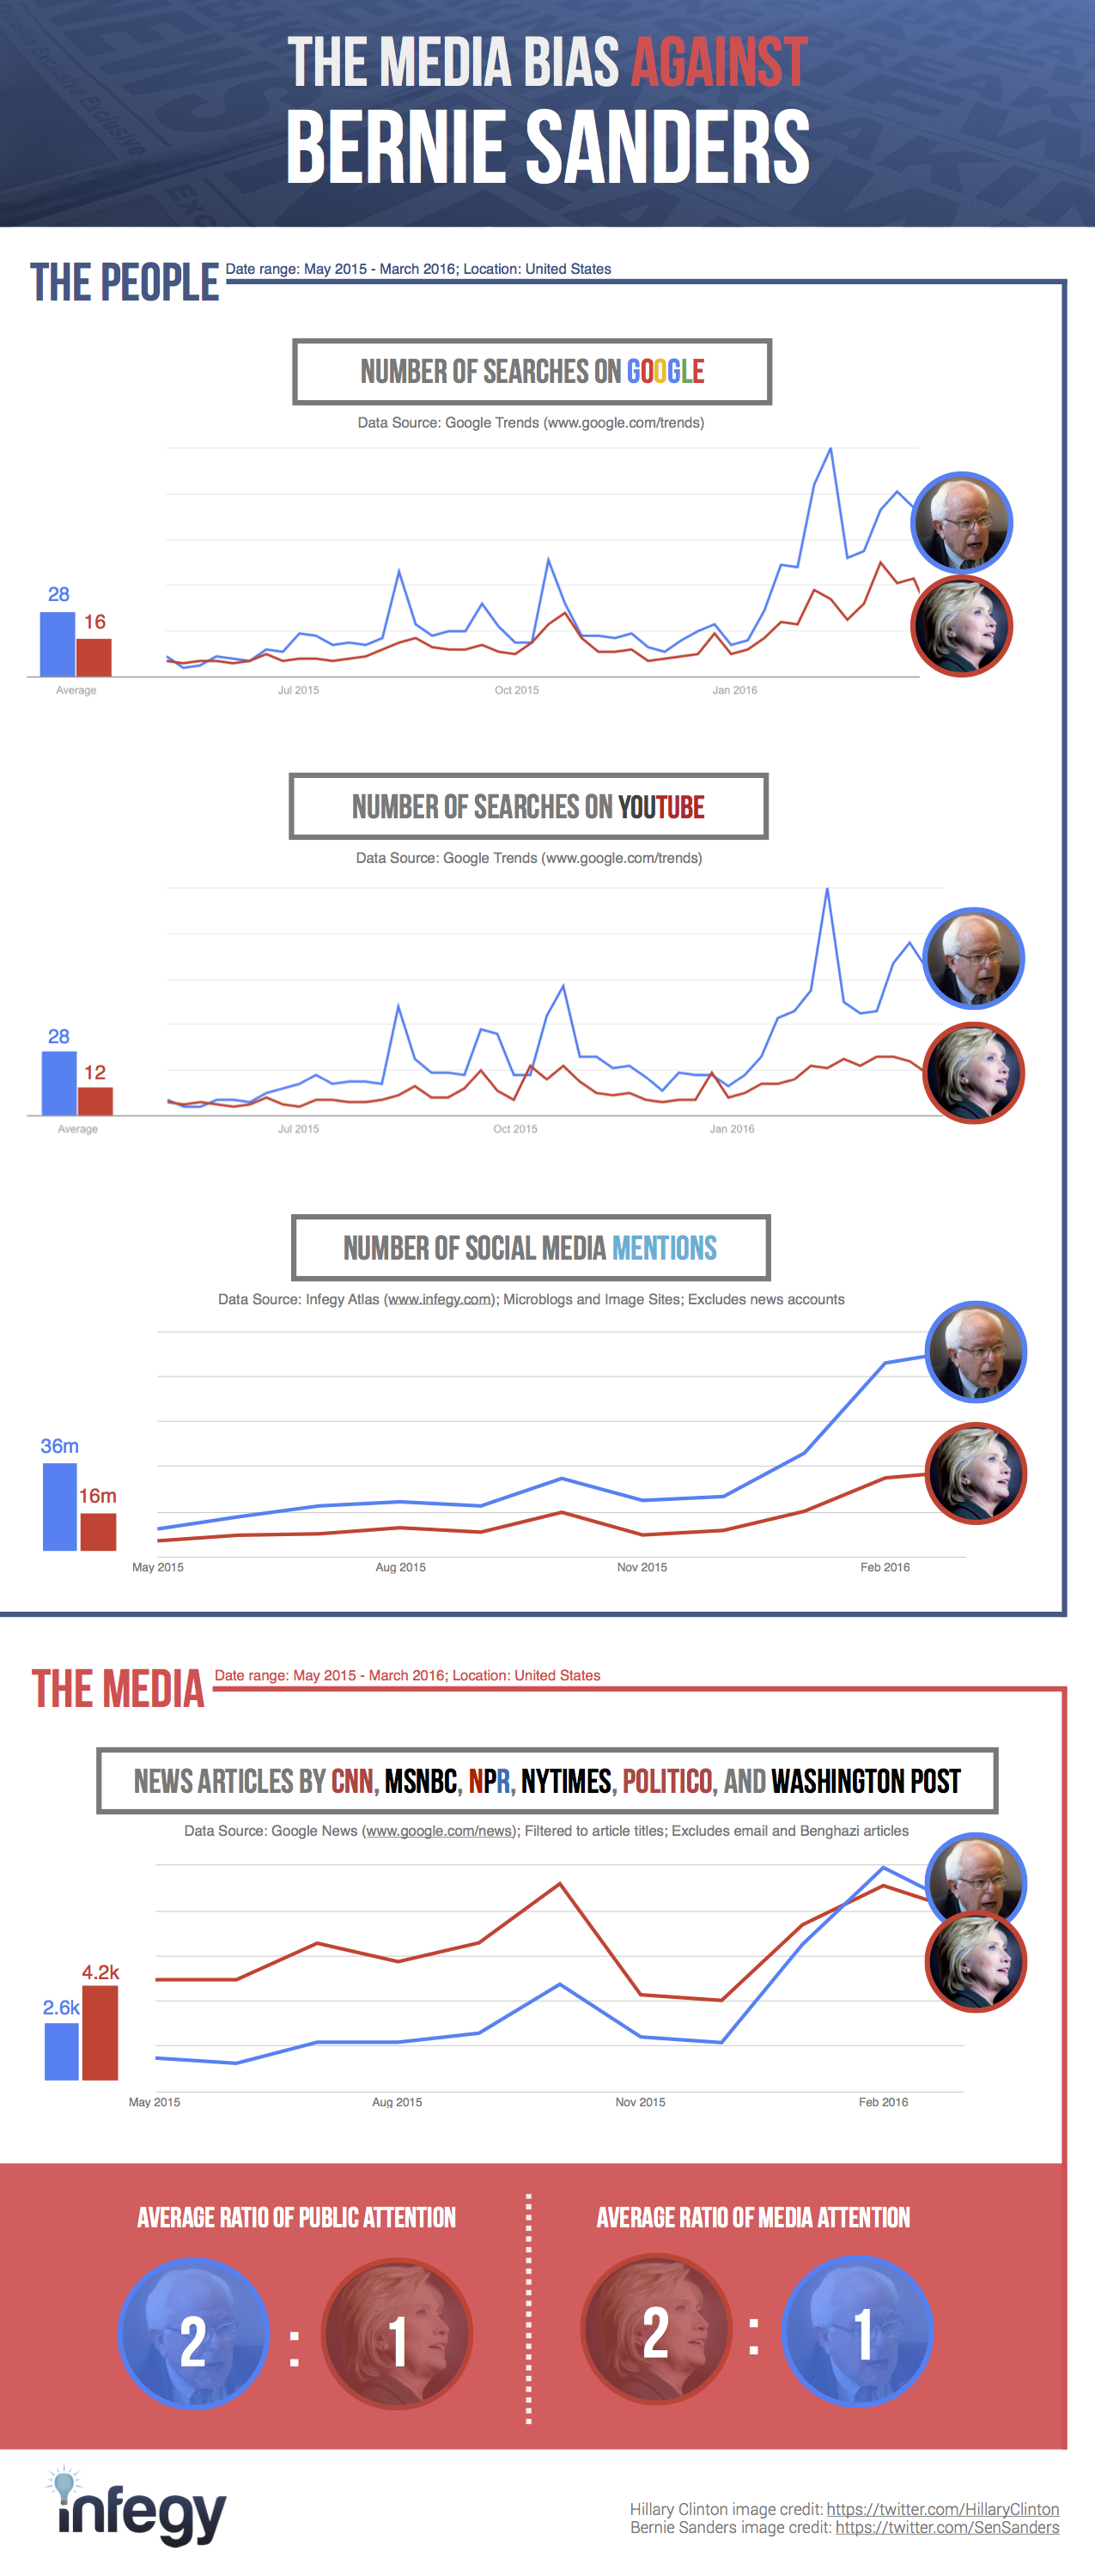 media-bias-against-bernie-sanders3.png